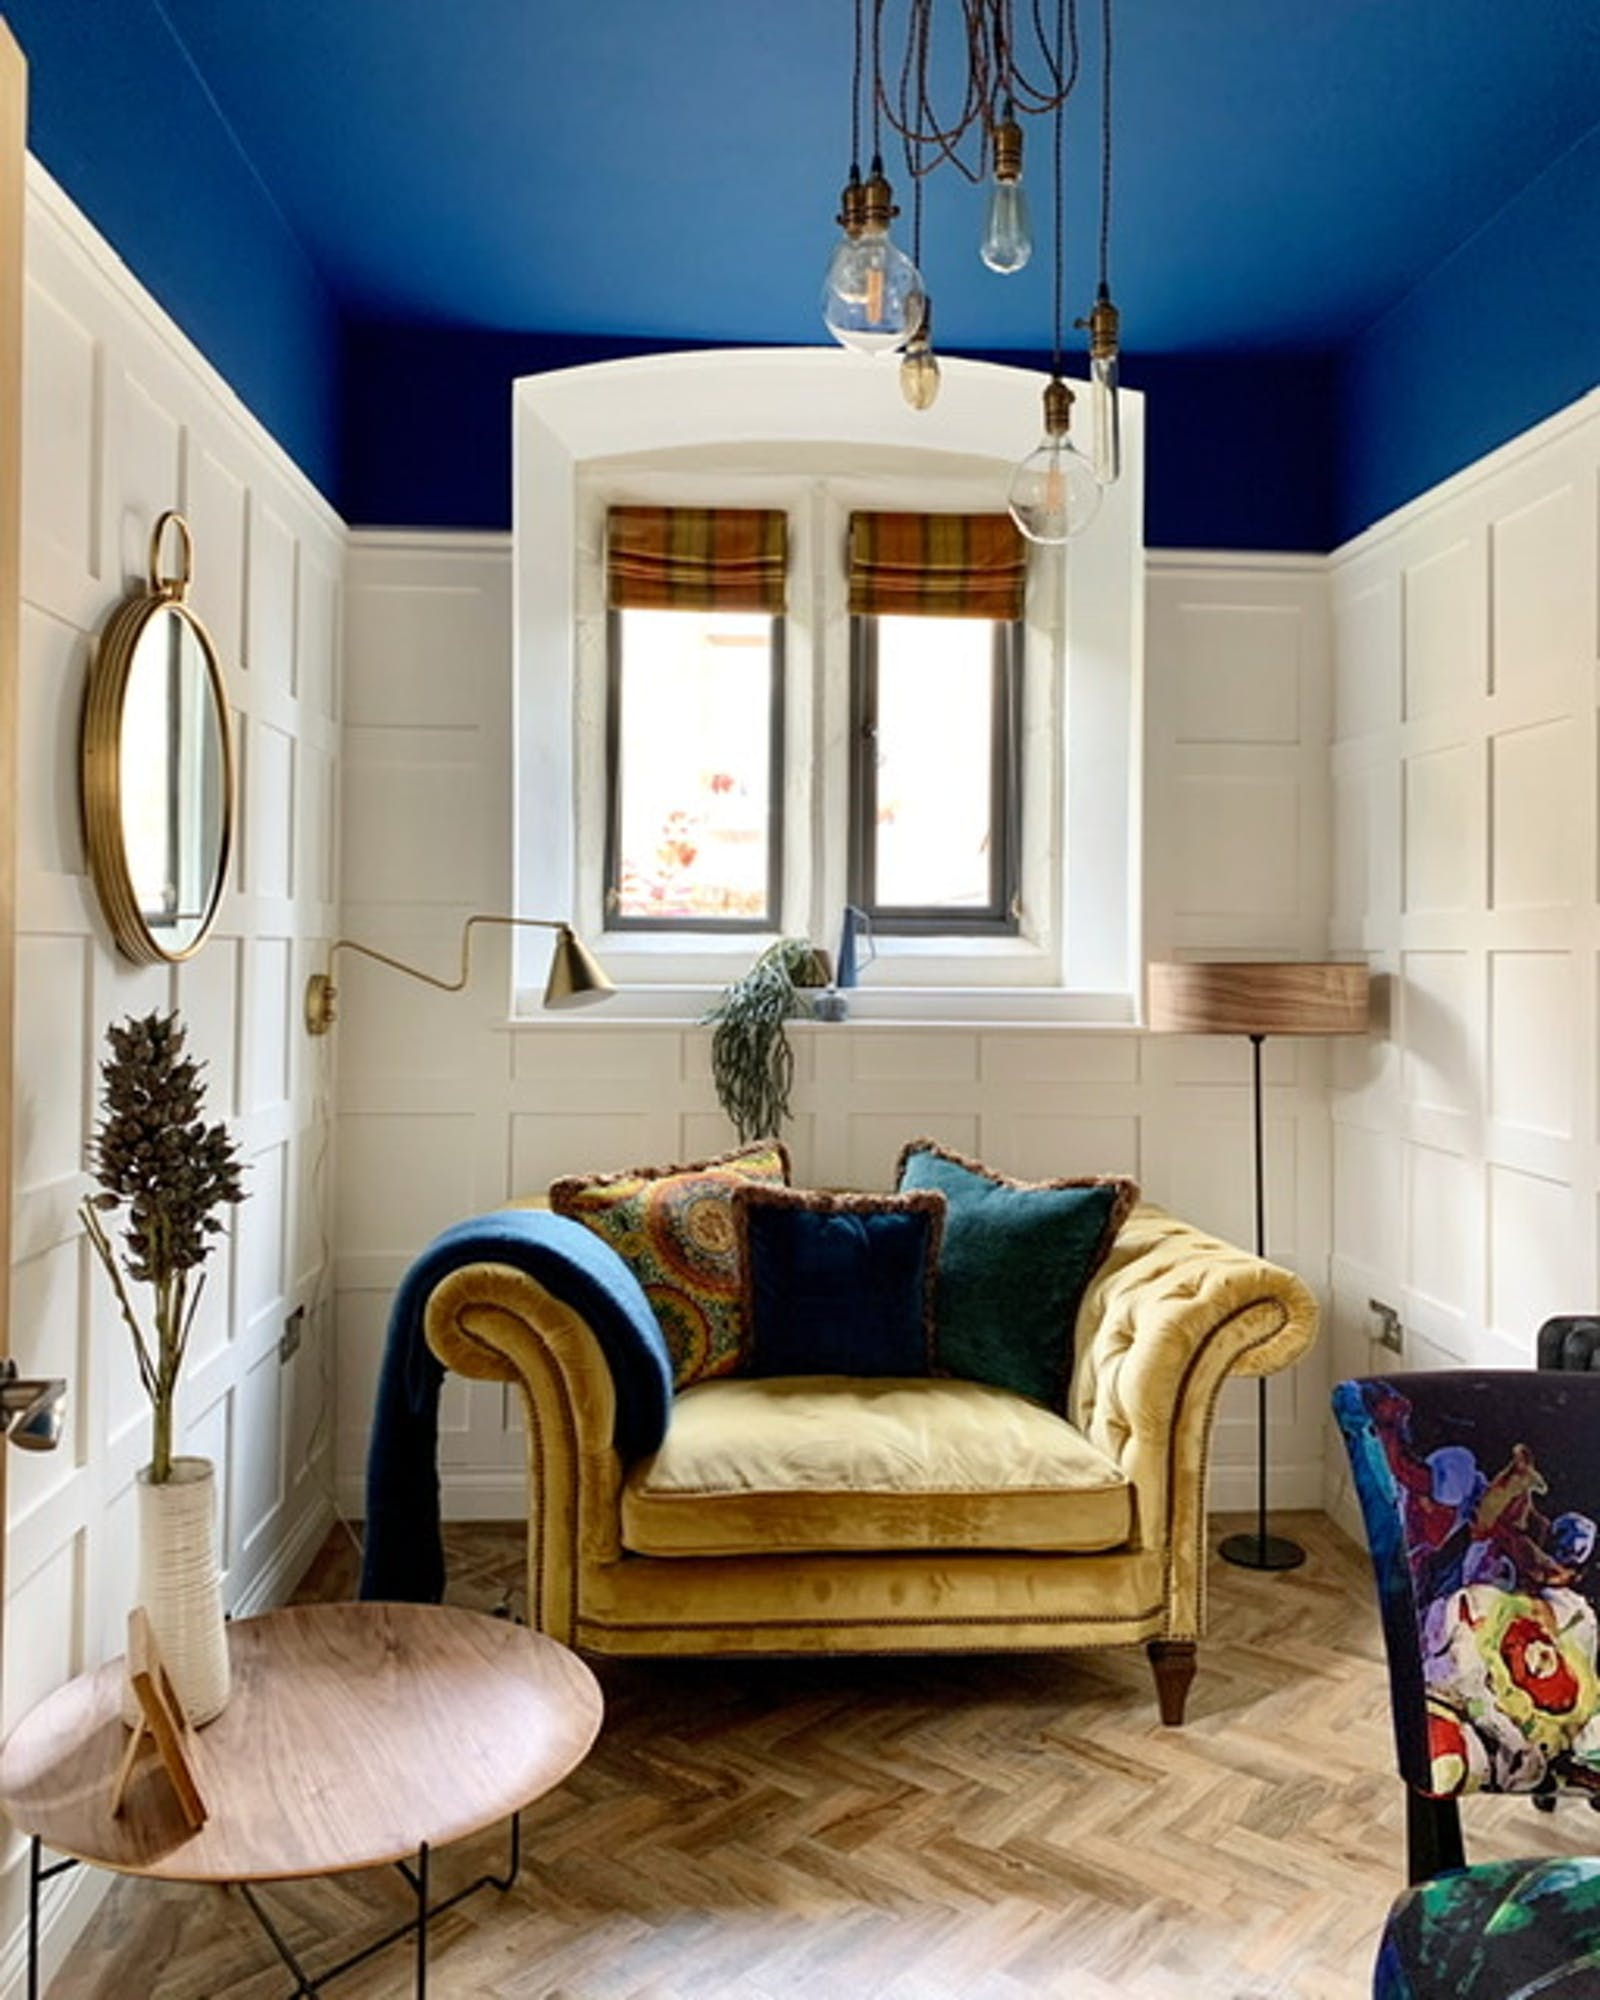 Sitting room with golden one seater and Lick Blue 111 ceiling